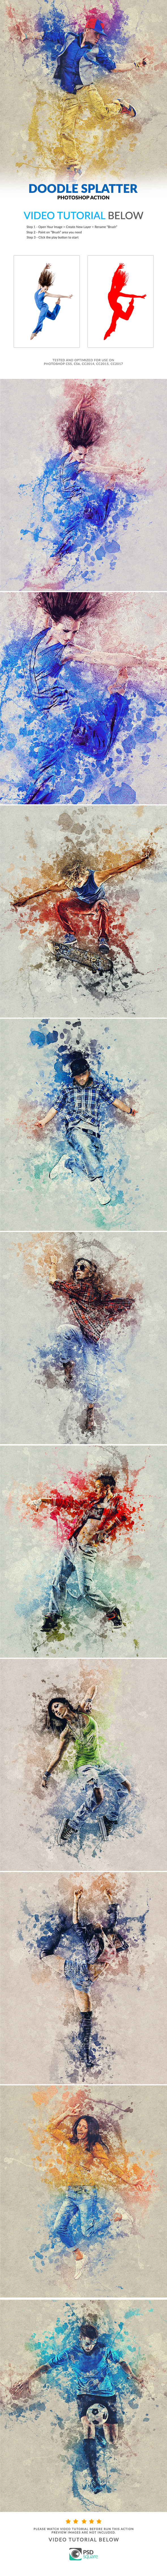 Doodle Splatter Photoshop Action - Photo Effects Actions